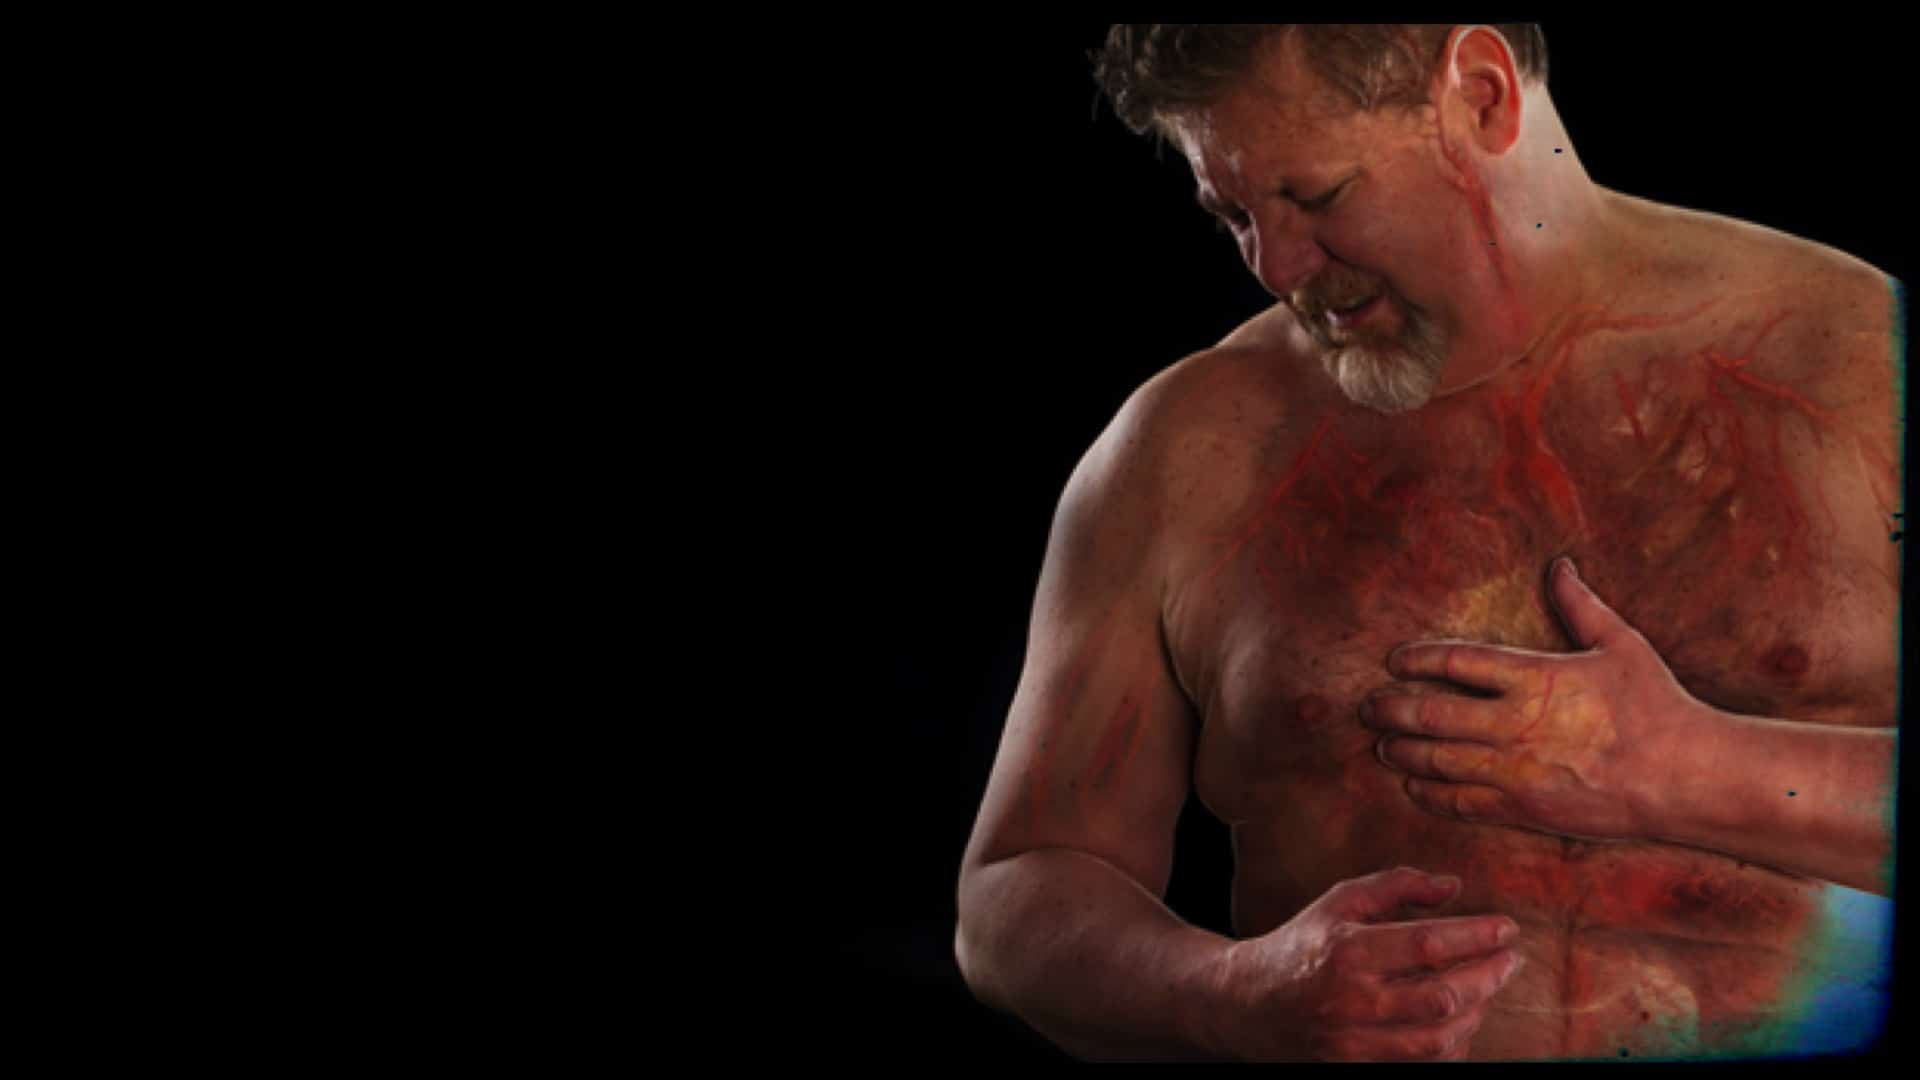 A person is shown with pain on their face. They have one hand over their heart and the other just below it as if they are suffering from chest pain. Subtly, overlaying the persons chest is an image of what is below the skin, blood vessels, bones, etc.